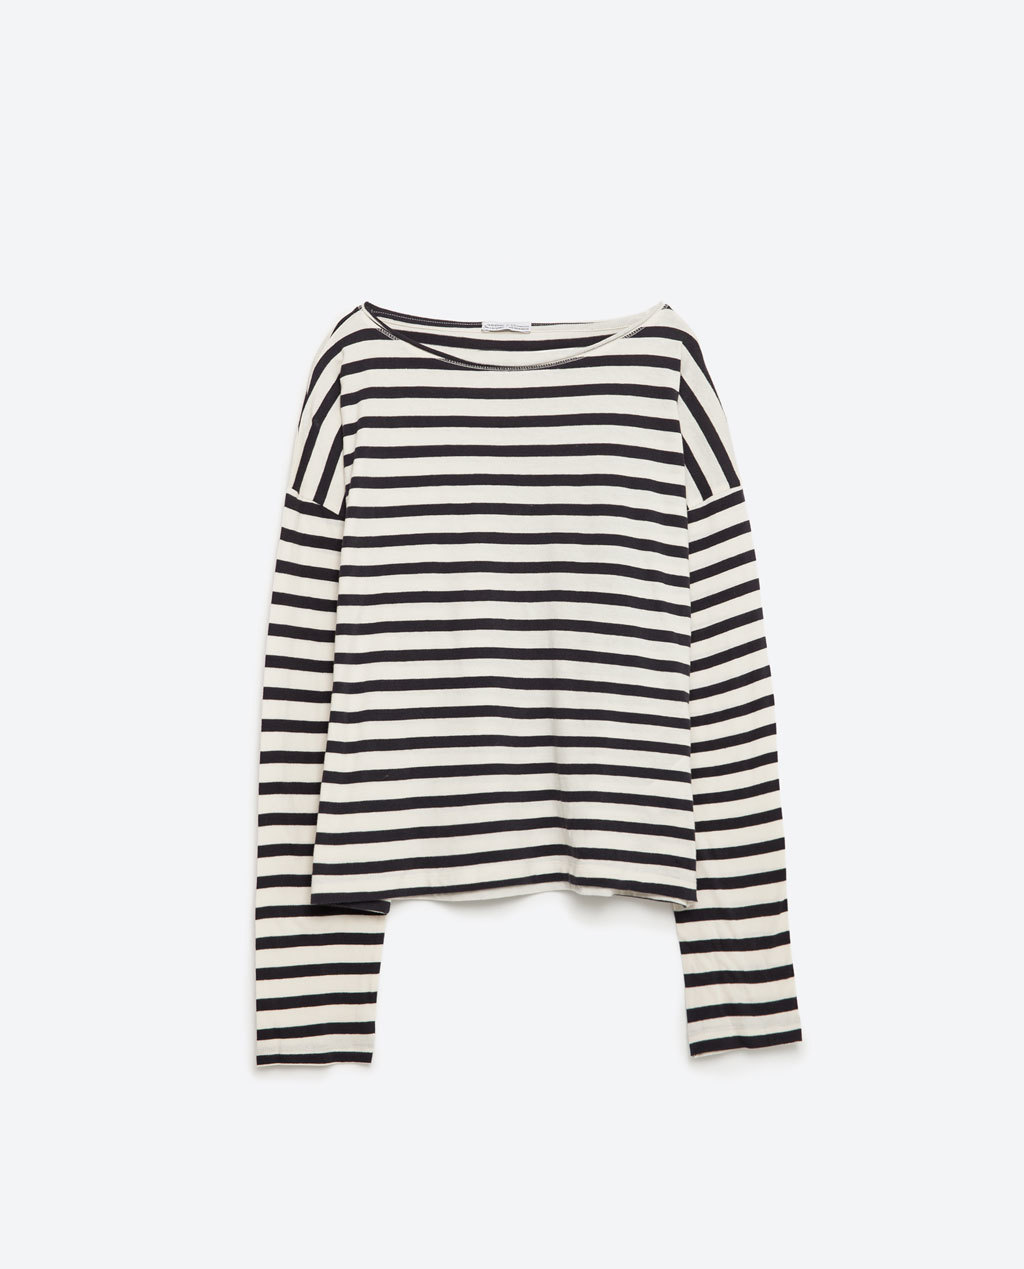 Boatneck Top - neckline: slash/boat neckline; pattern: horizontal stripes; secondary colour: white; predominant colour: black; occasions: casual; length: standard; style: top; fibres: cotton - 100%; fit: body skimming; sleeve length: long sleeve; sleeve style: standard; pattern type: fabric; texture group: jersey - stretchy/drapey; multicoloured: multicoloured; season: s/s 2016